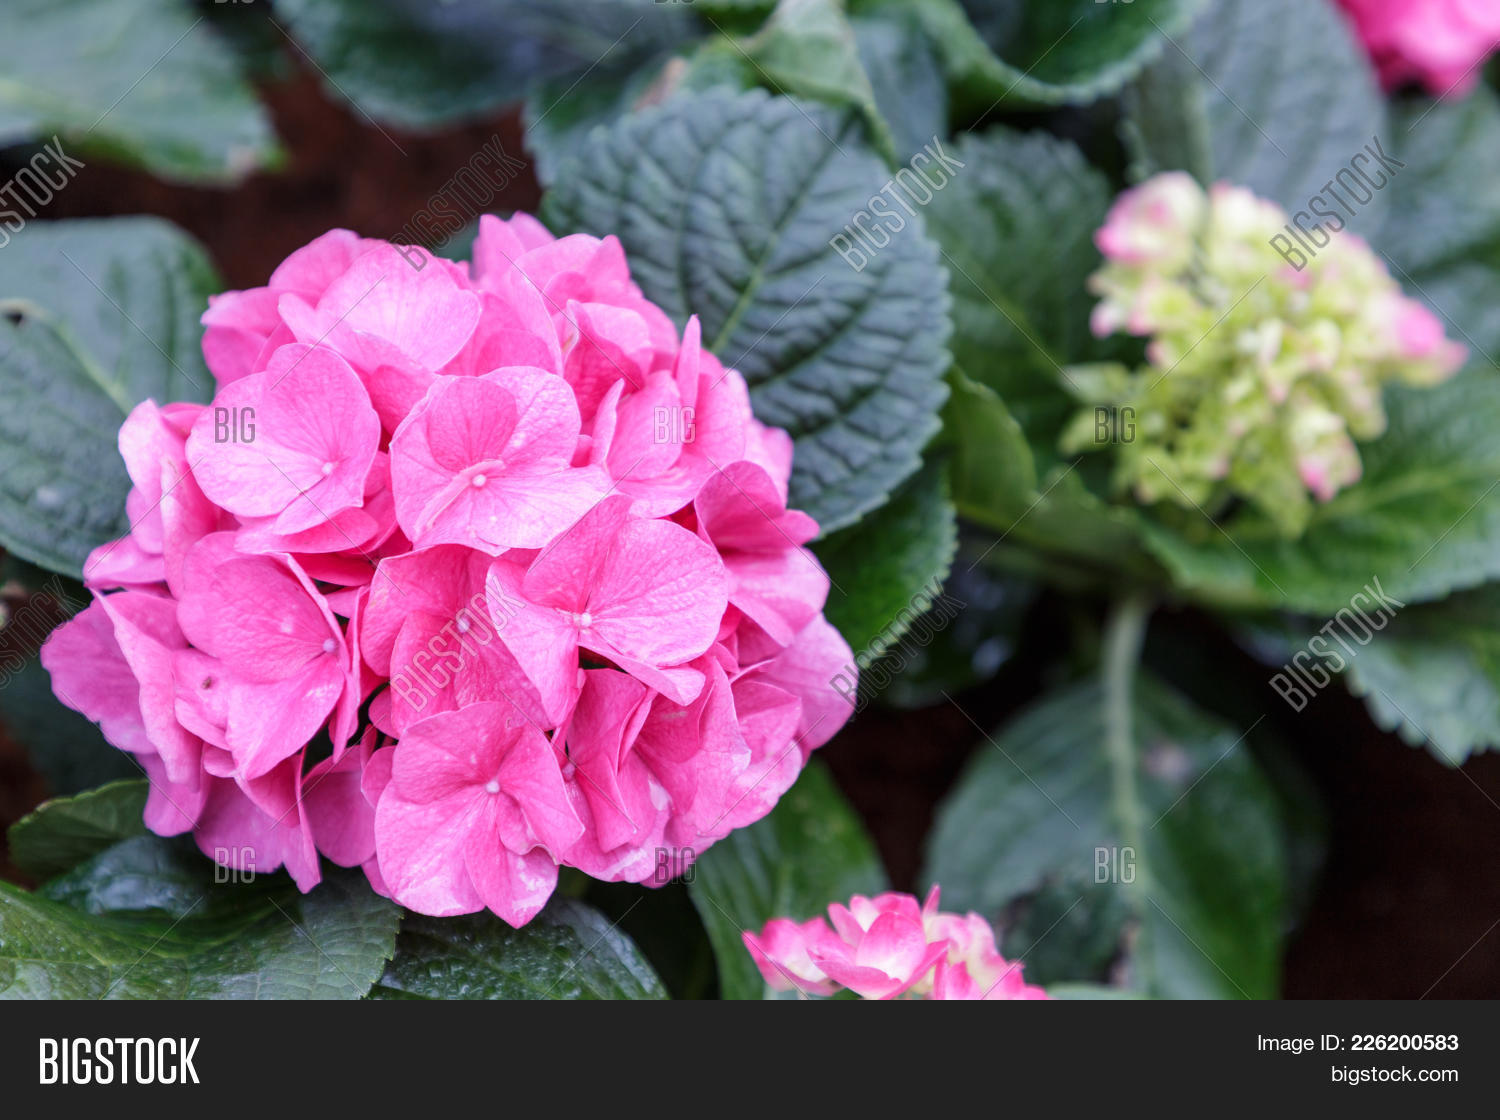 Composition Pink Flower Powerpoint Template Composition Pink